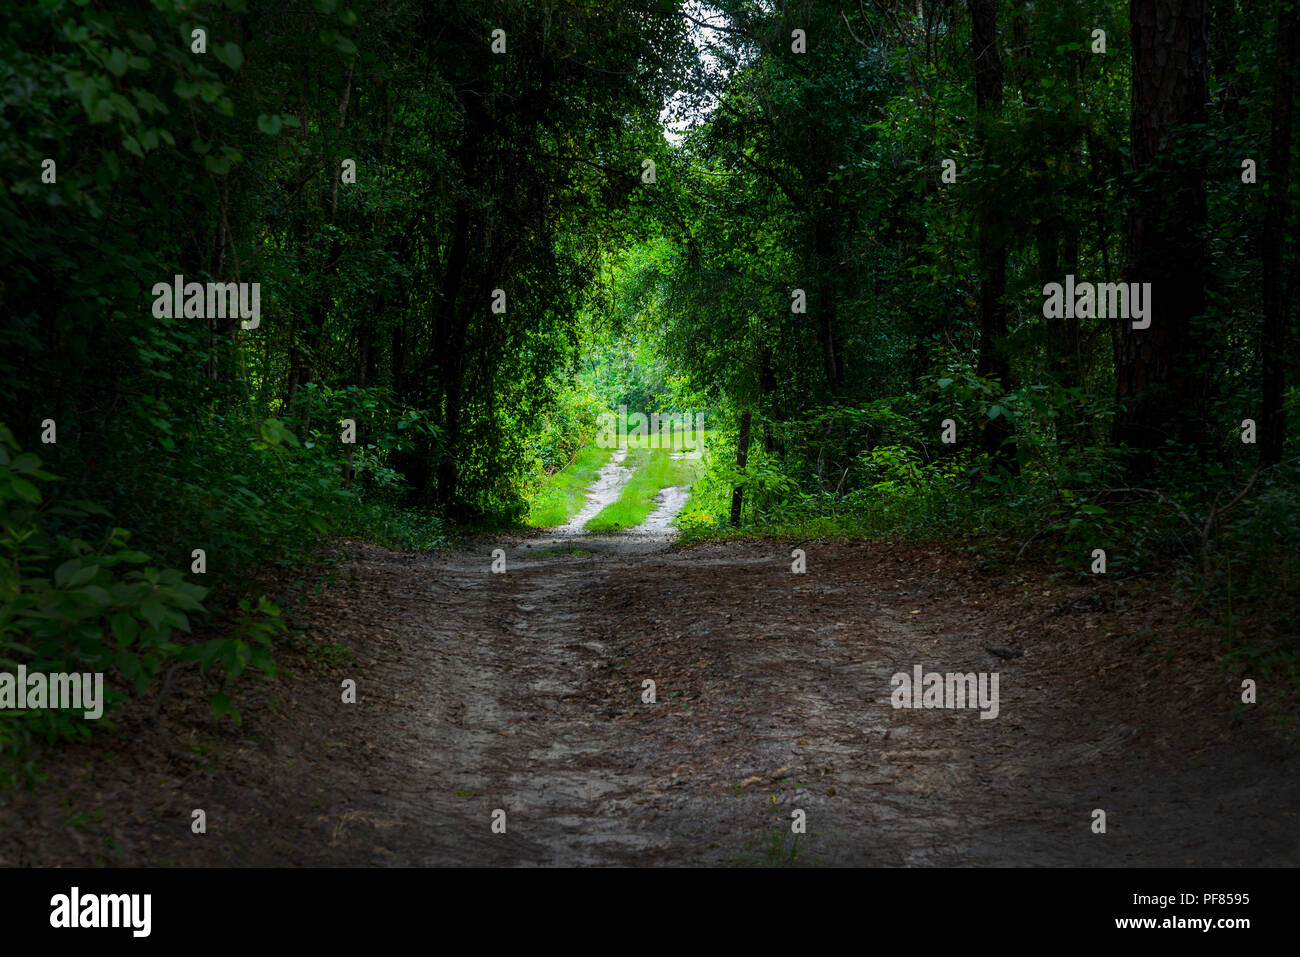 Mysterious pathway entrance. - Stock Image